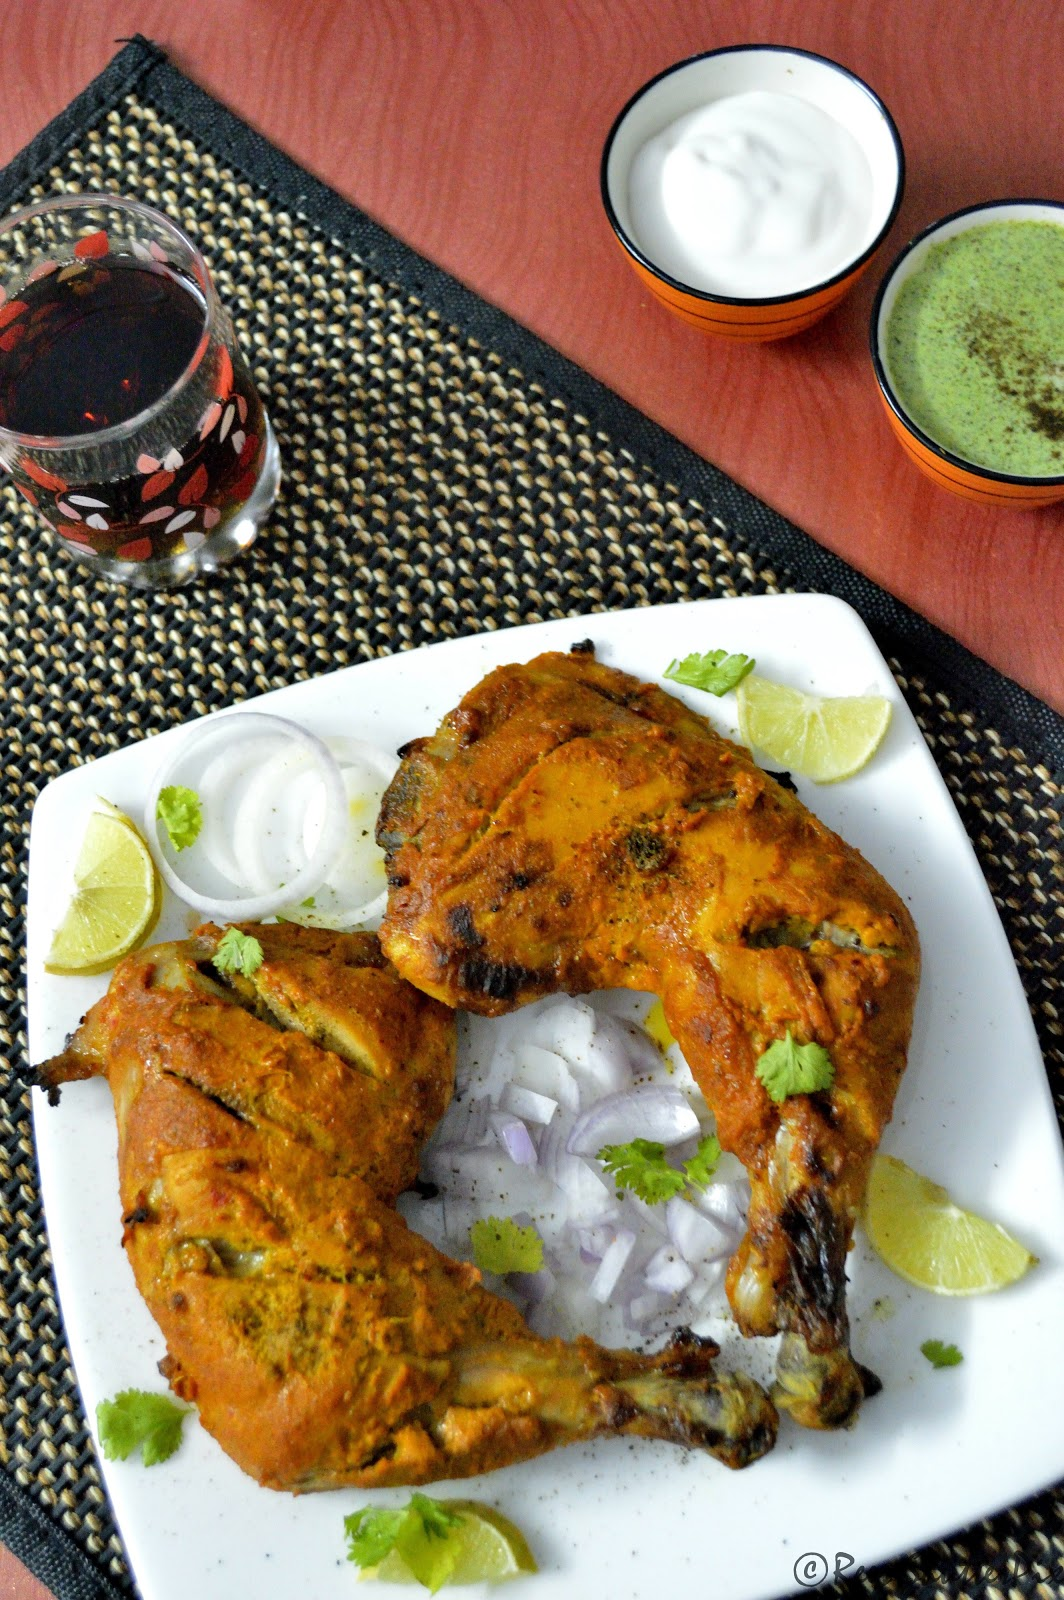 Tandoori Chicken Recipe,How to make tandoori chicken using microwave oven at home, Non Vegetarian Recipes, easy non veg starter recipe, microwave cooking,microwave oven recipes, easy tandoori chicken.